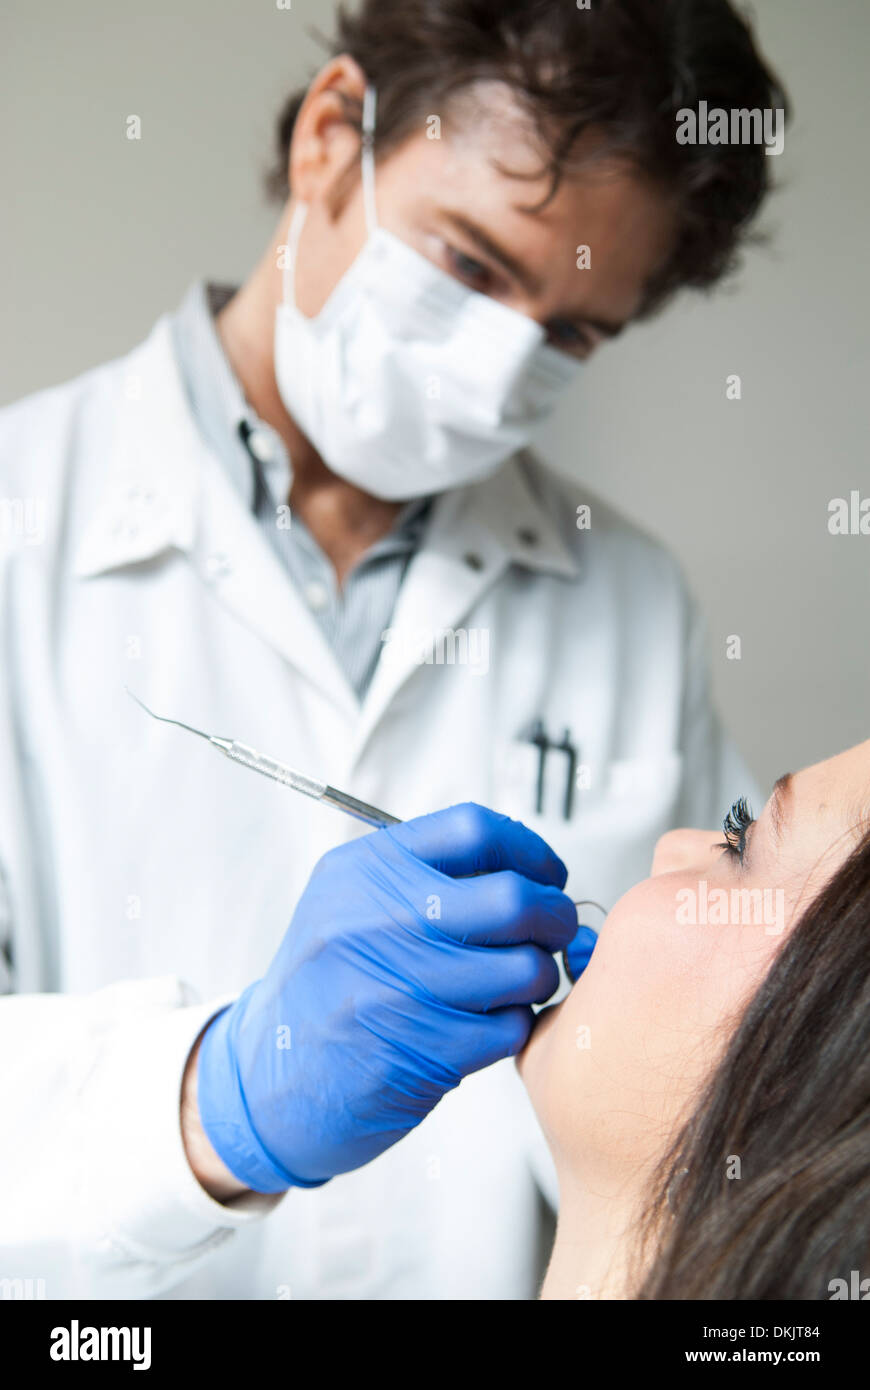 Male dentist wearing blue gloves examining smiling female dental patient - Stock Image